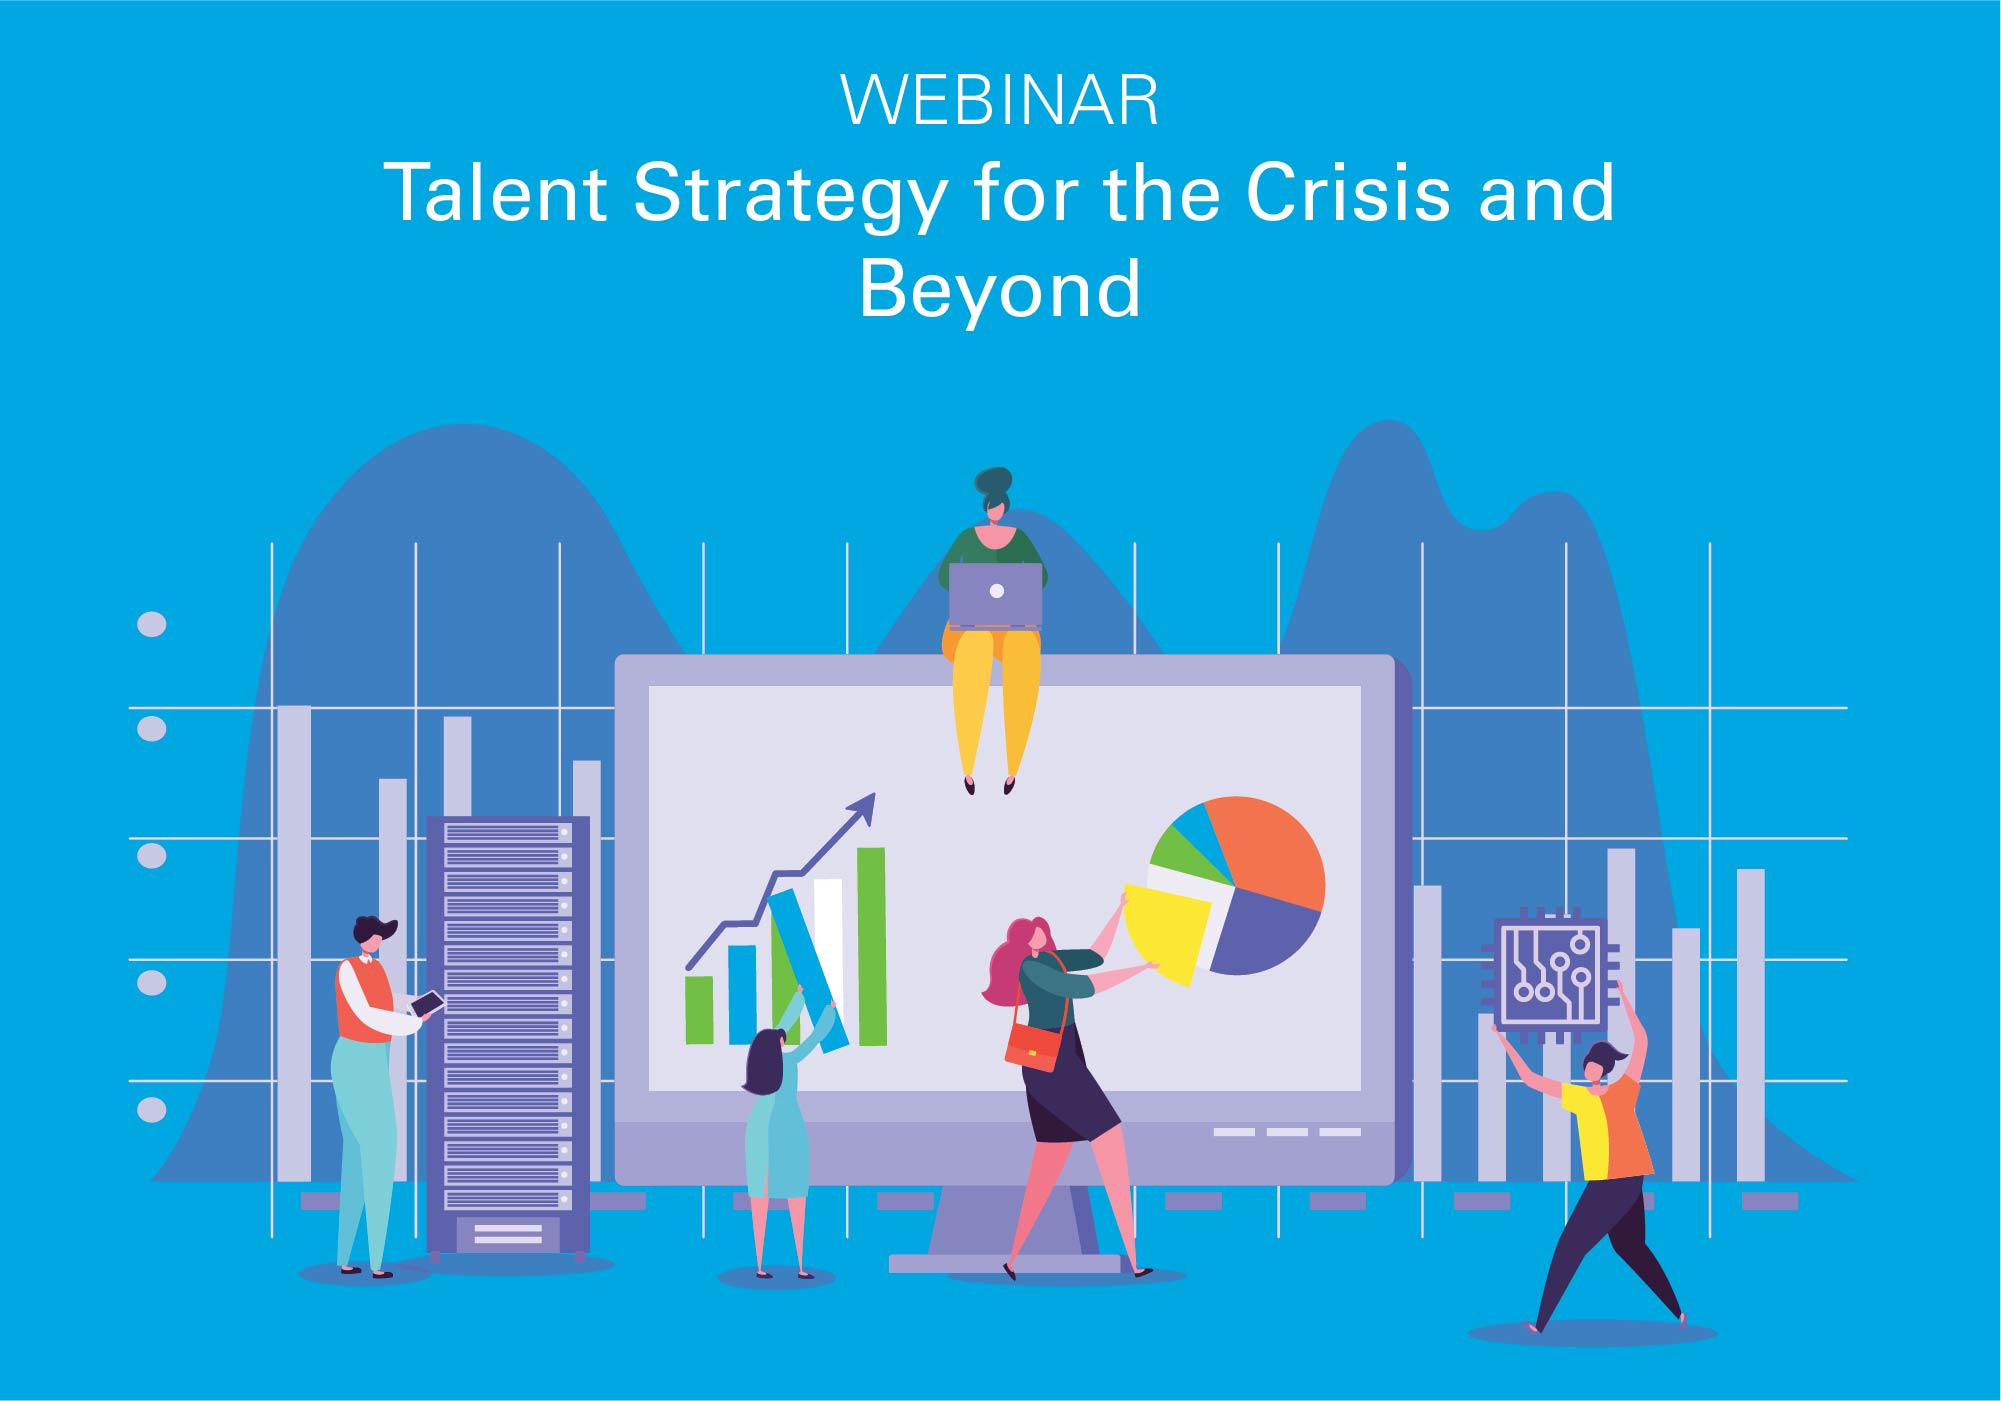 Talent strategy for the crisis and beyond webinar graphic